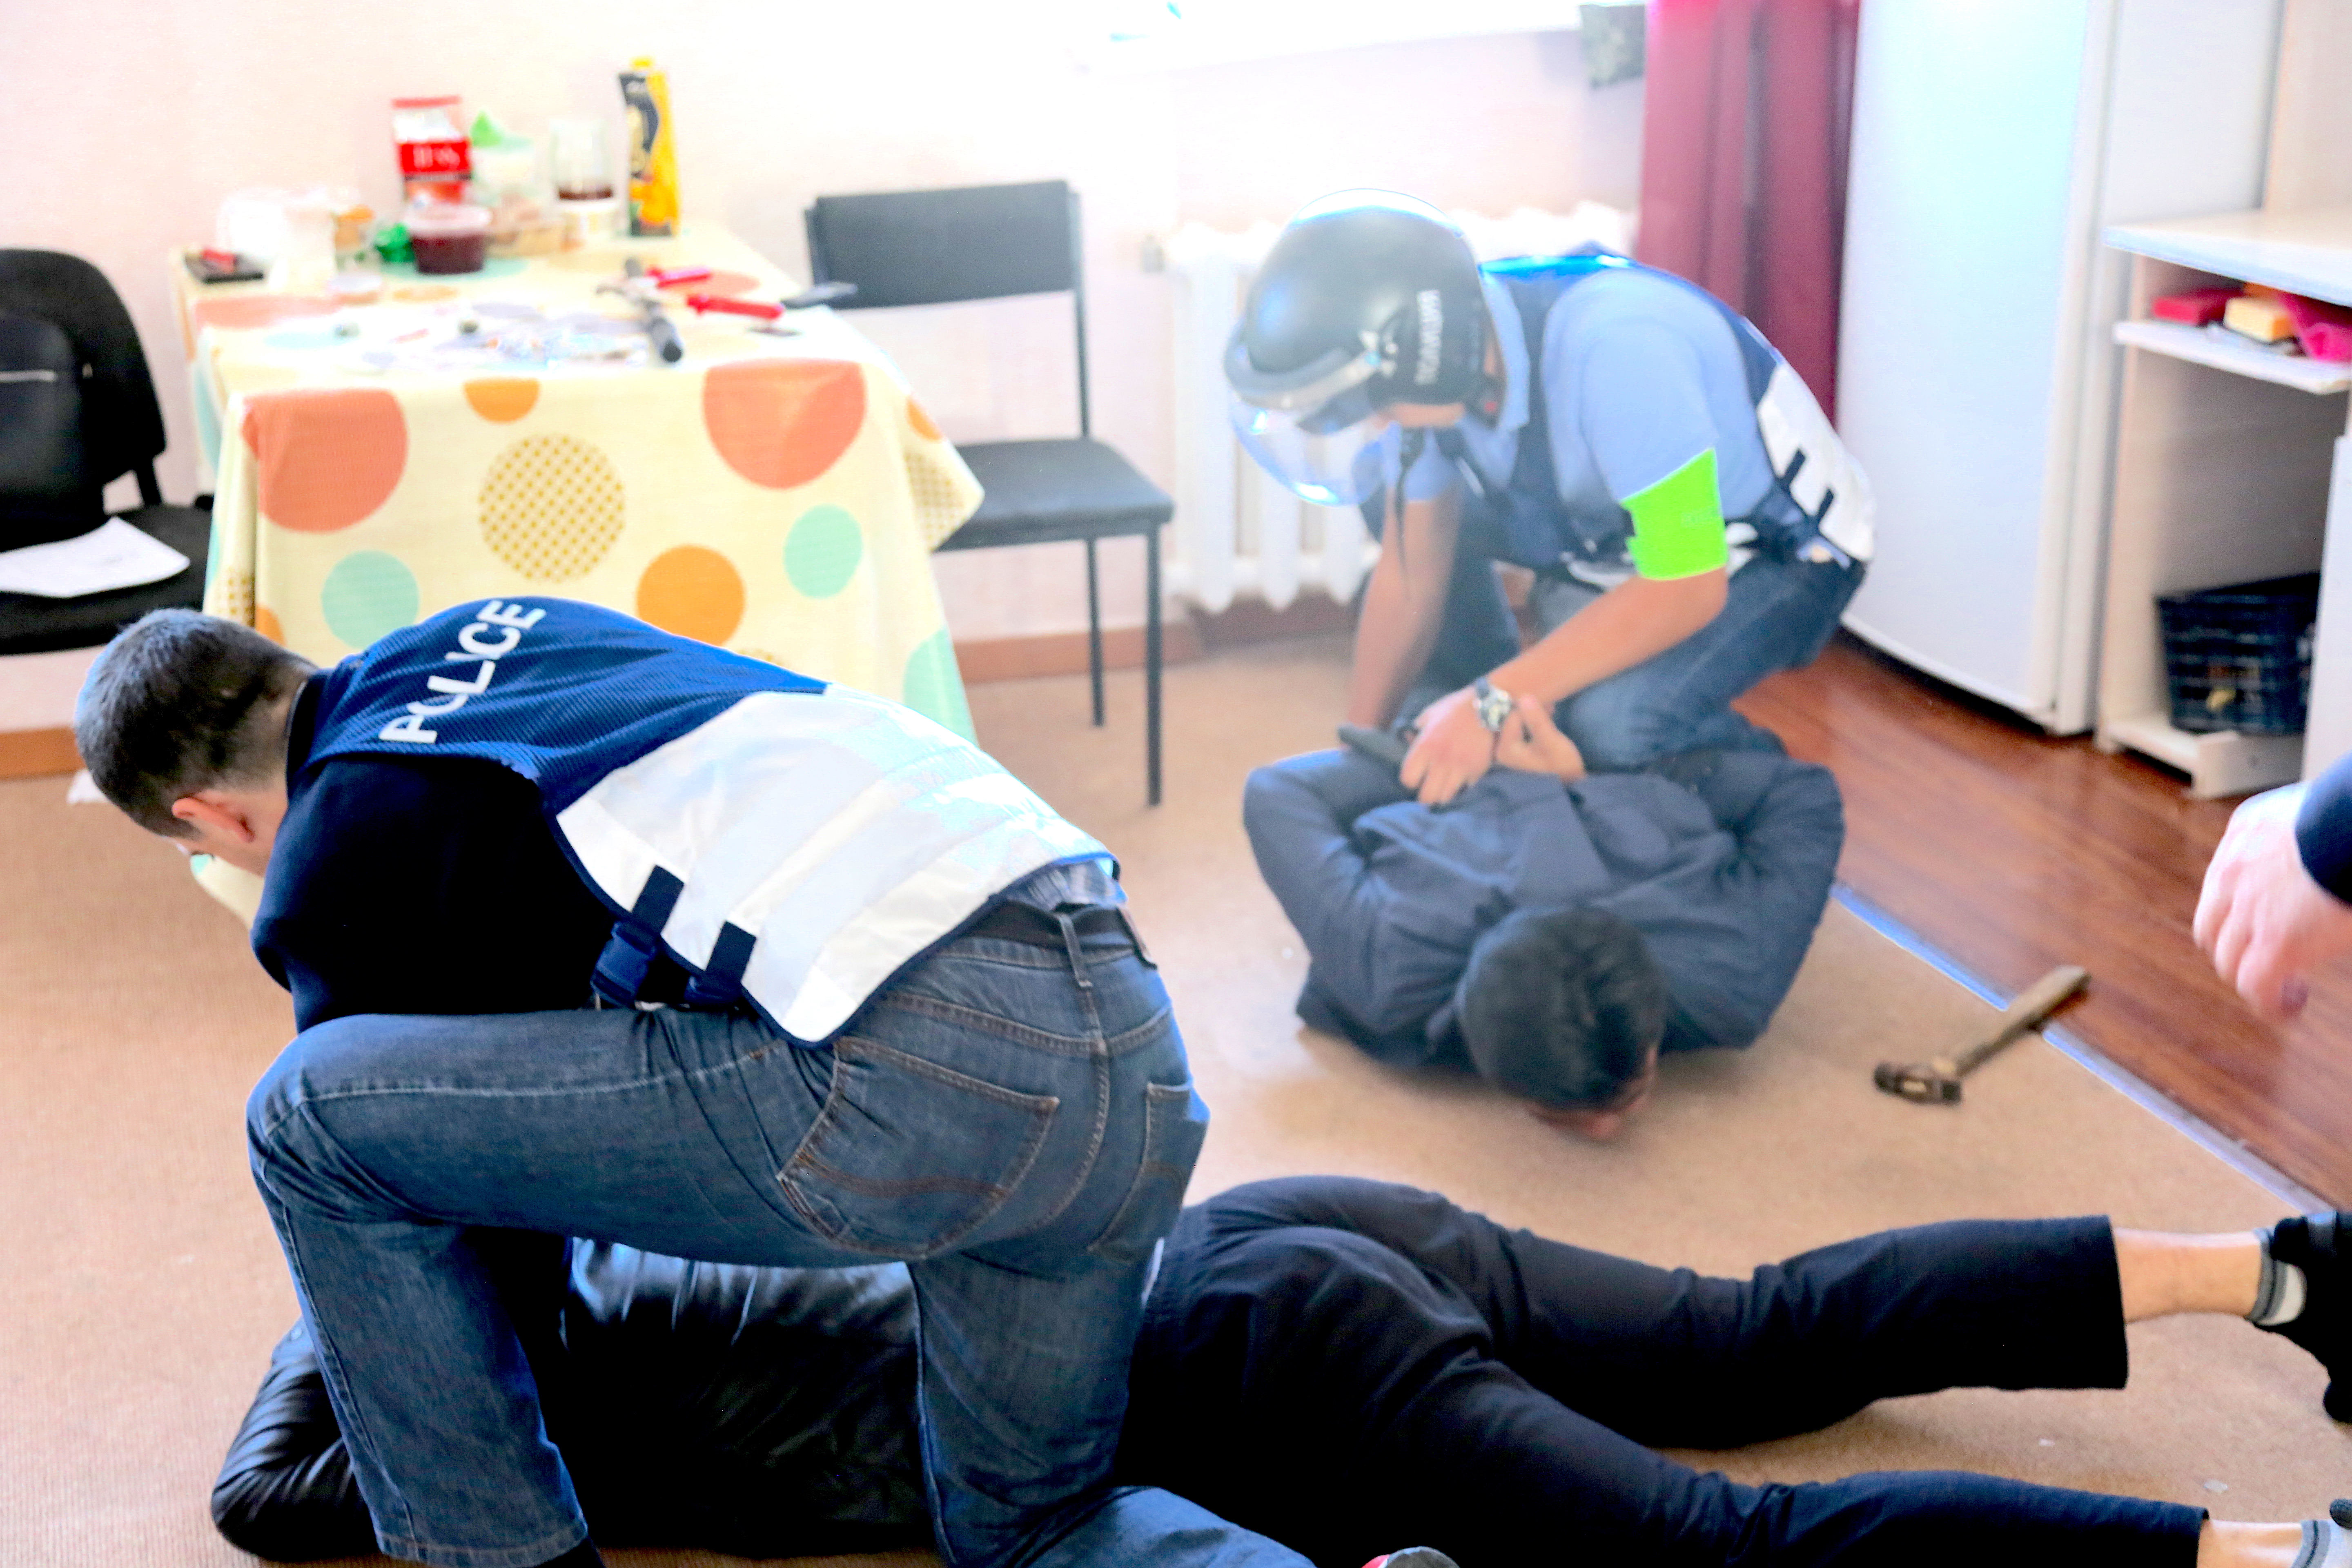 In photos: live-action simulations of human trafficking raids in Kazakhstan